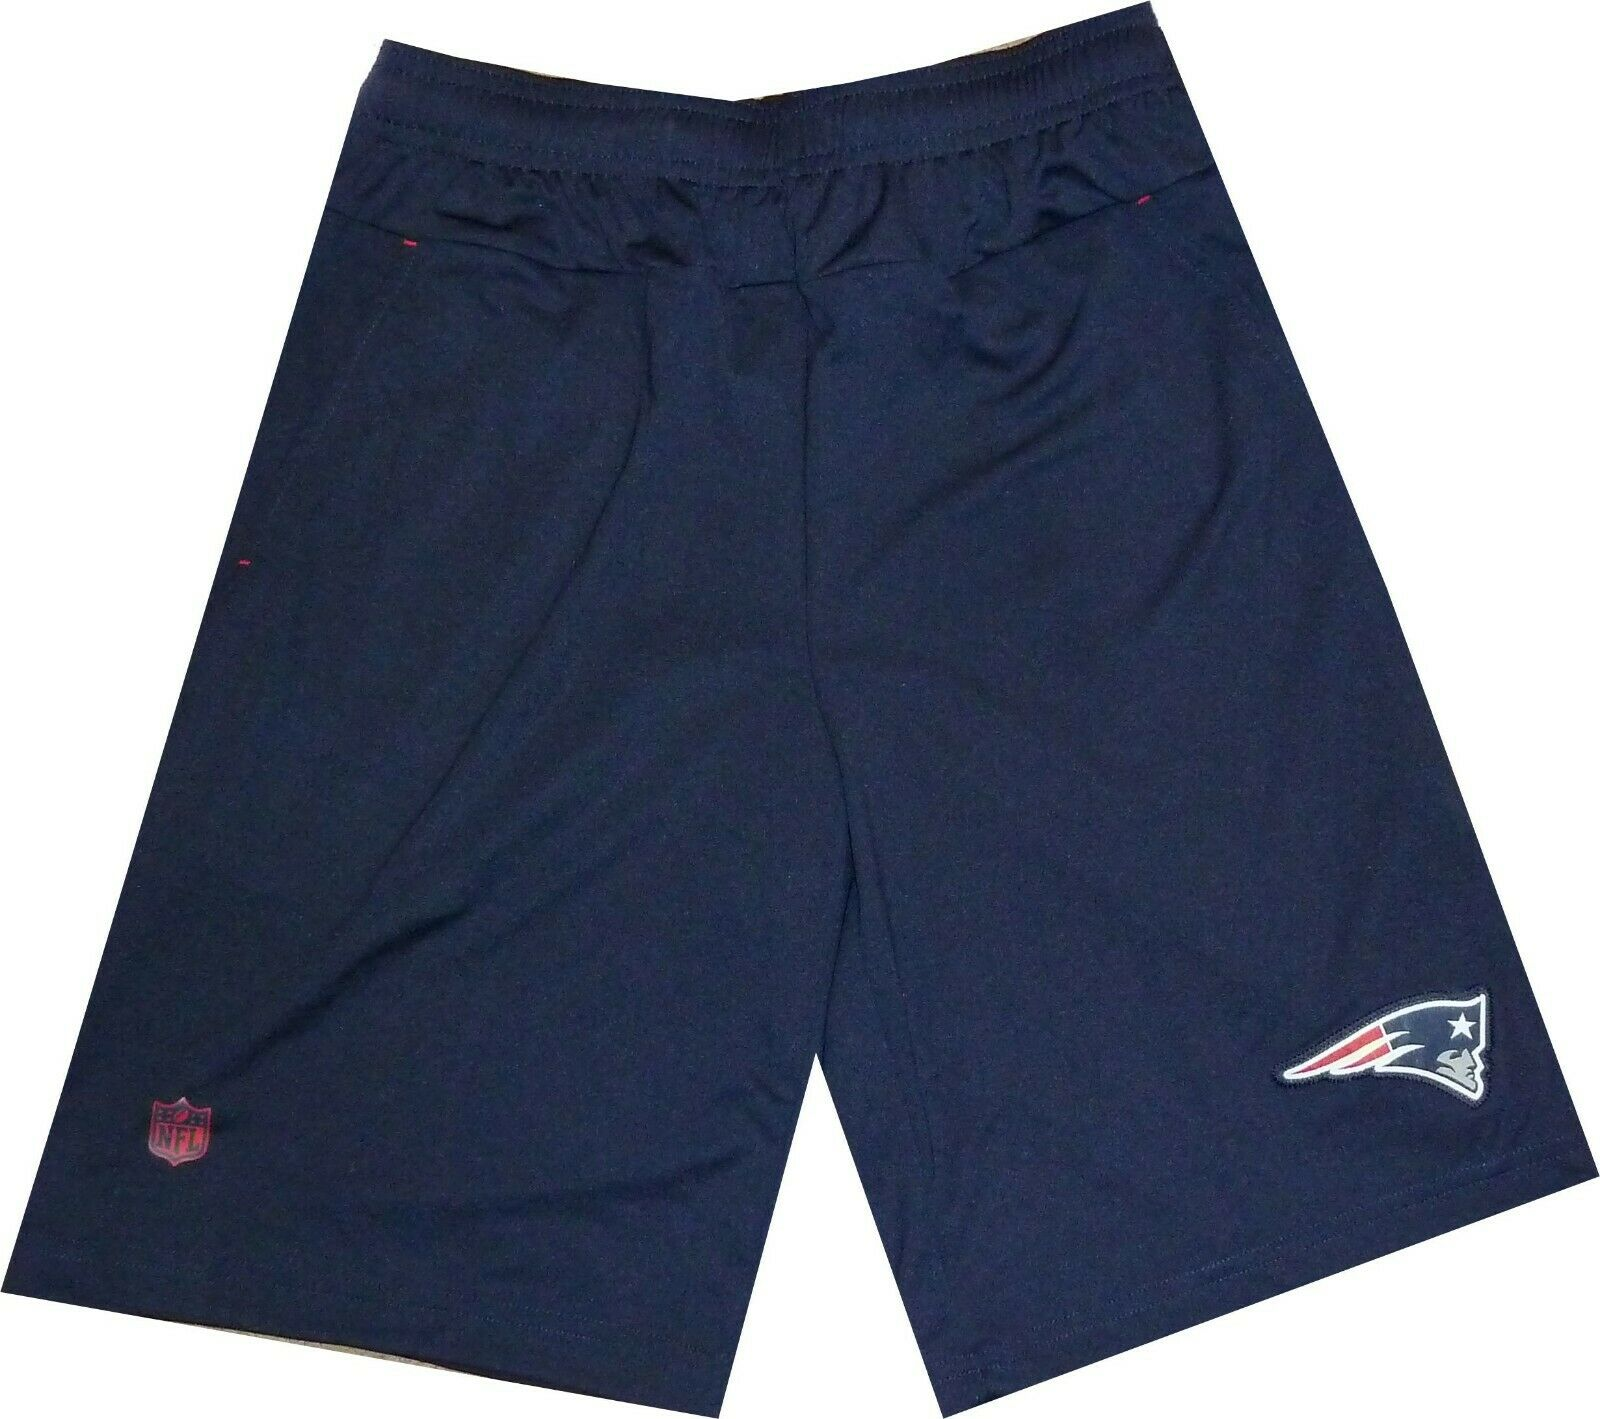 New England Patriots Youth Shorts Outerstuff Team Apparel Bo